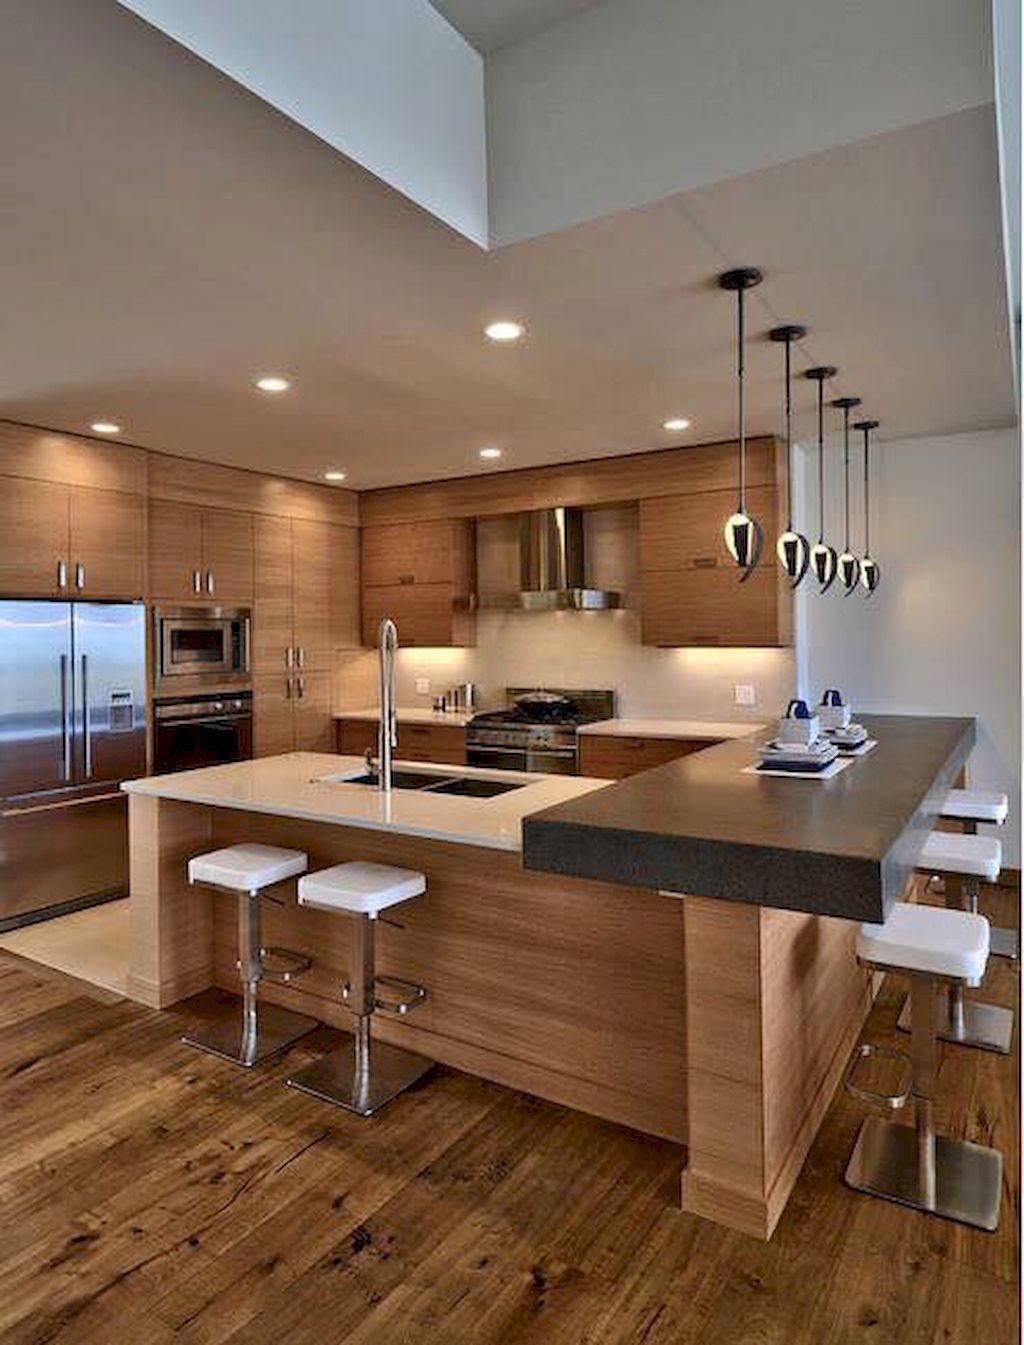 60 Awesome Modern Kitchens Ideas Remodeling On A Budget | Pinterest ...